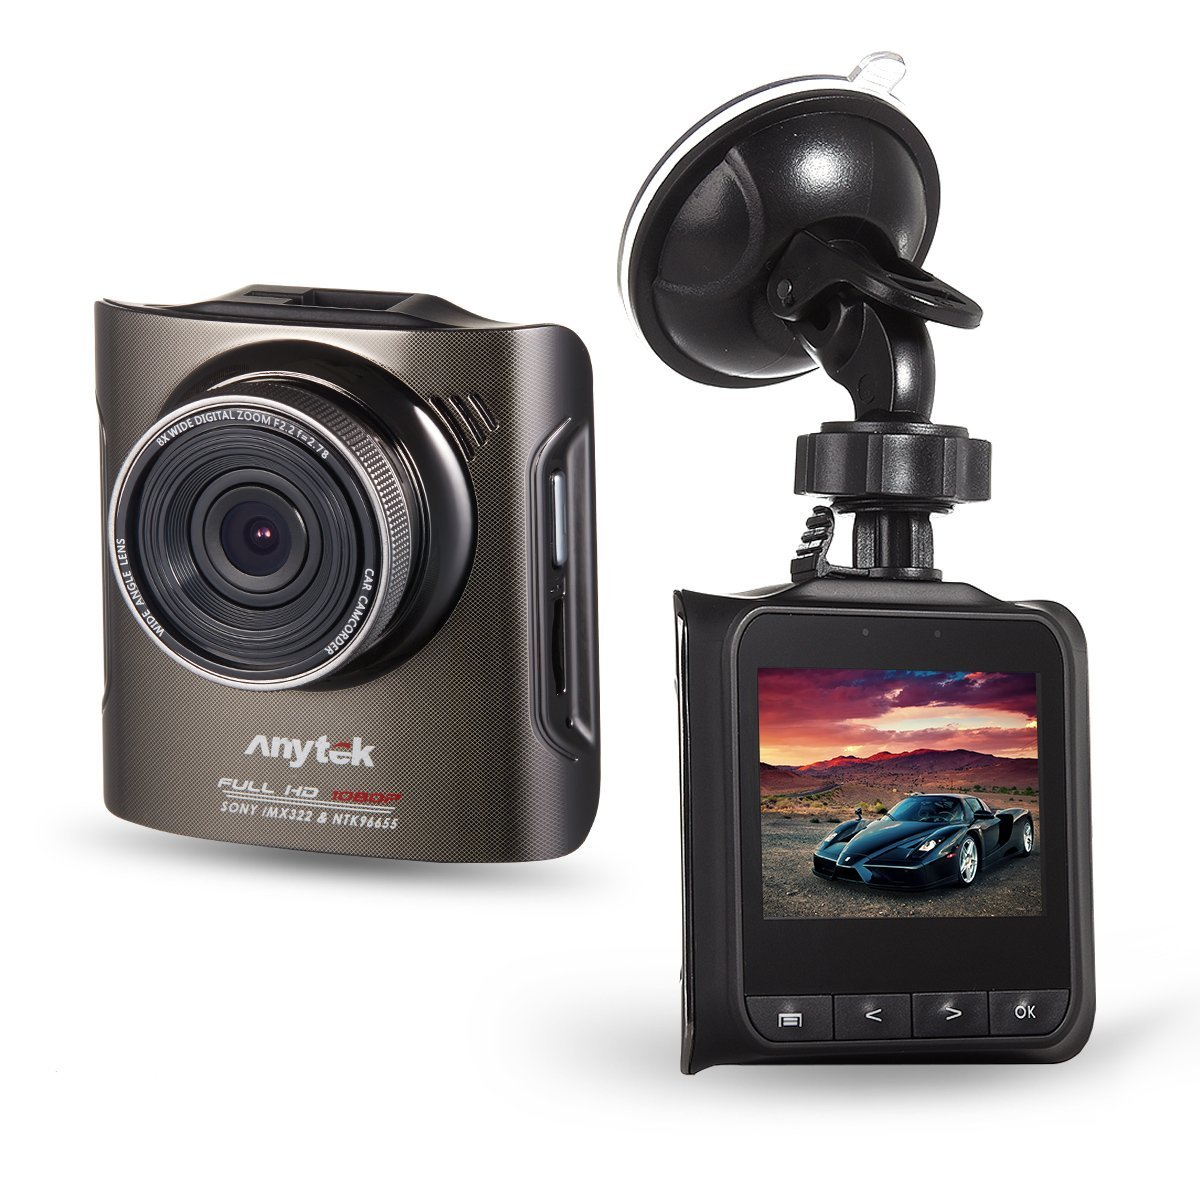 Anytek A3 Car DVR Novatek 96655 Car Camera With For Sony IMX322 CMOS Super Night Vision Dash Cam Car DVR Black Box car dvr registrator dash cam novatek 96655 sony imx322 wifi dvr cam for bmw x3 e83 f25 x1 e84 3 series e46 e90 e91 e92